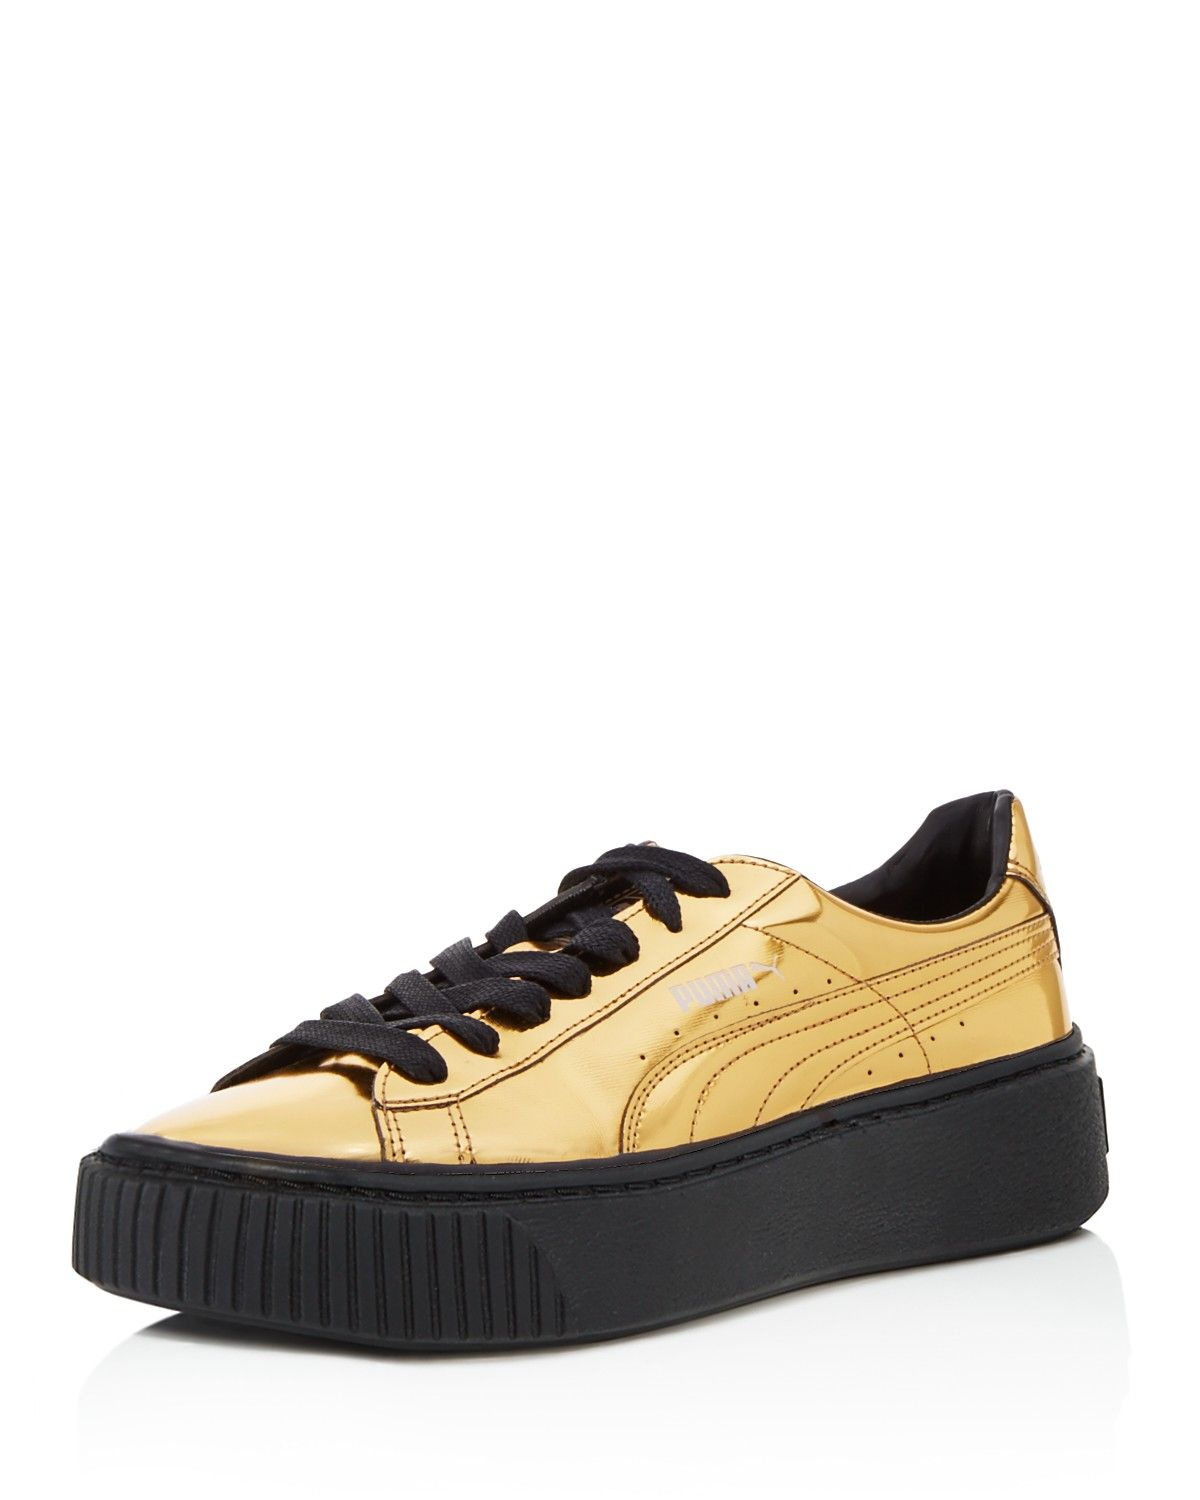 PUMA Women's Shoes - PUMA Women Basket Metallic Platform Lace Up Sneakers -  Find deals and best selling products for PUMA Shoes for Women